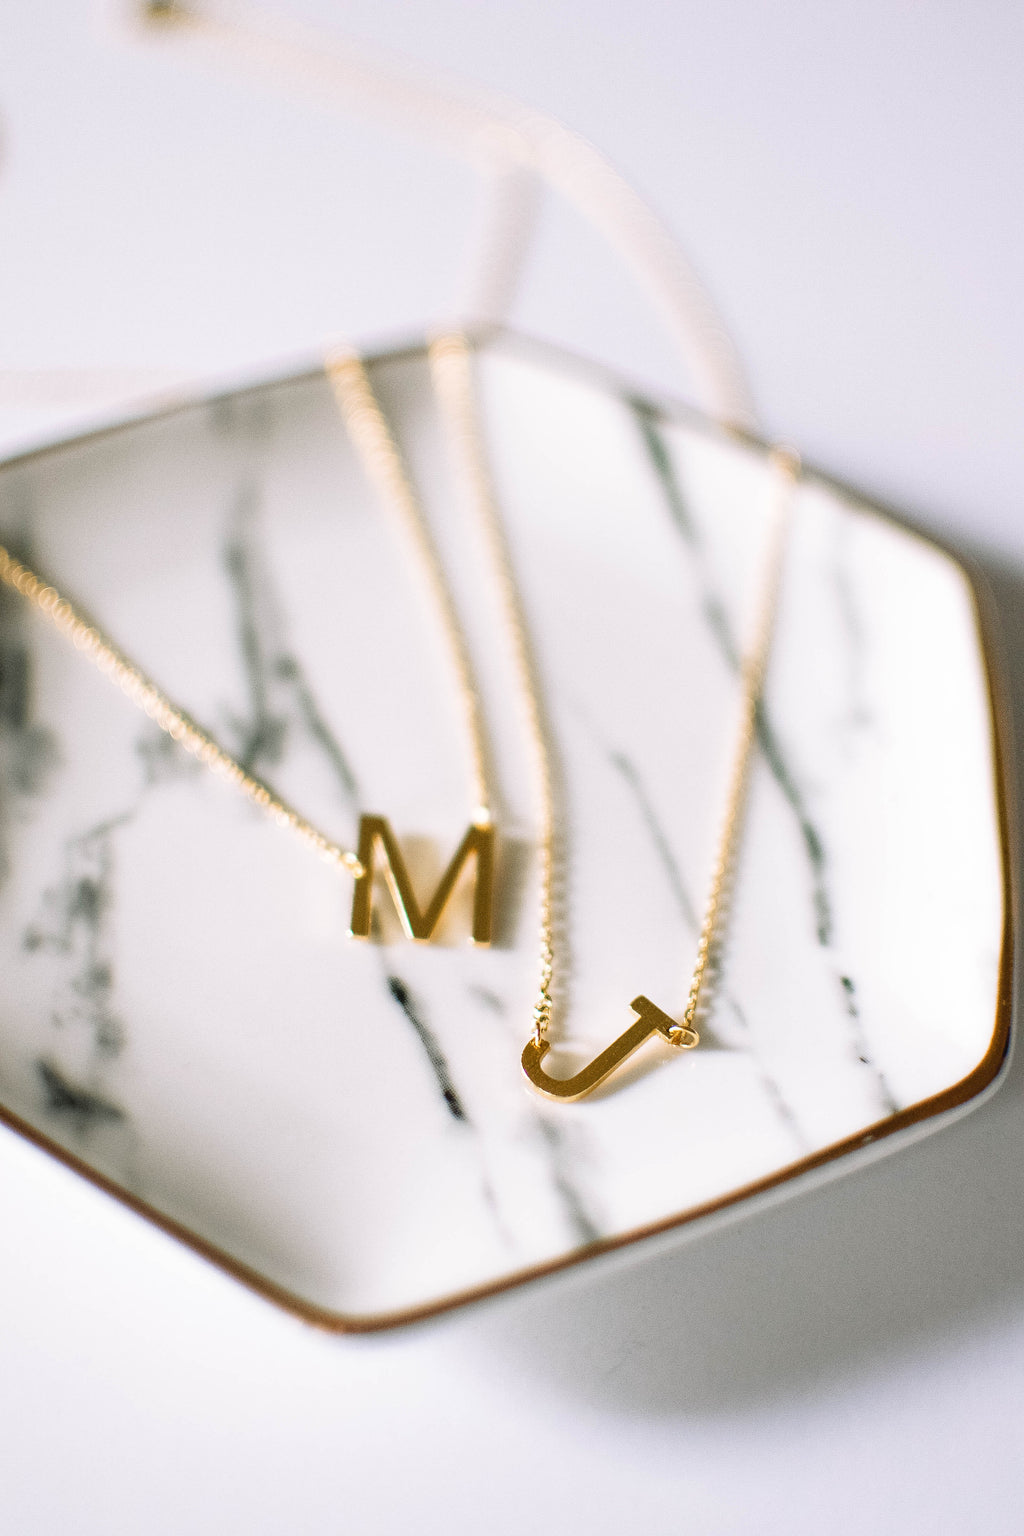 Gold Brushed Letter Necklace - J - Mint Pop Shop